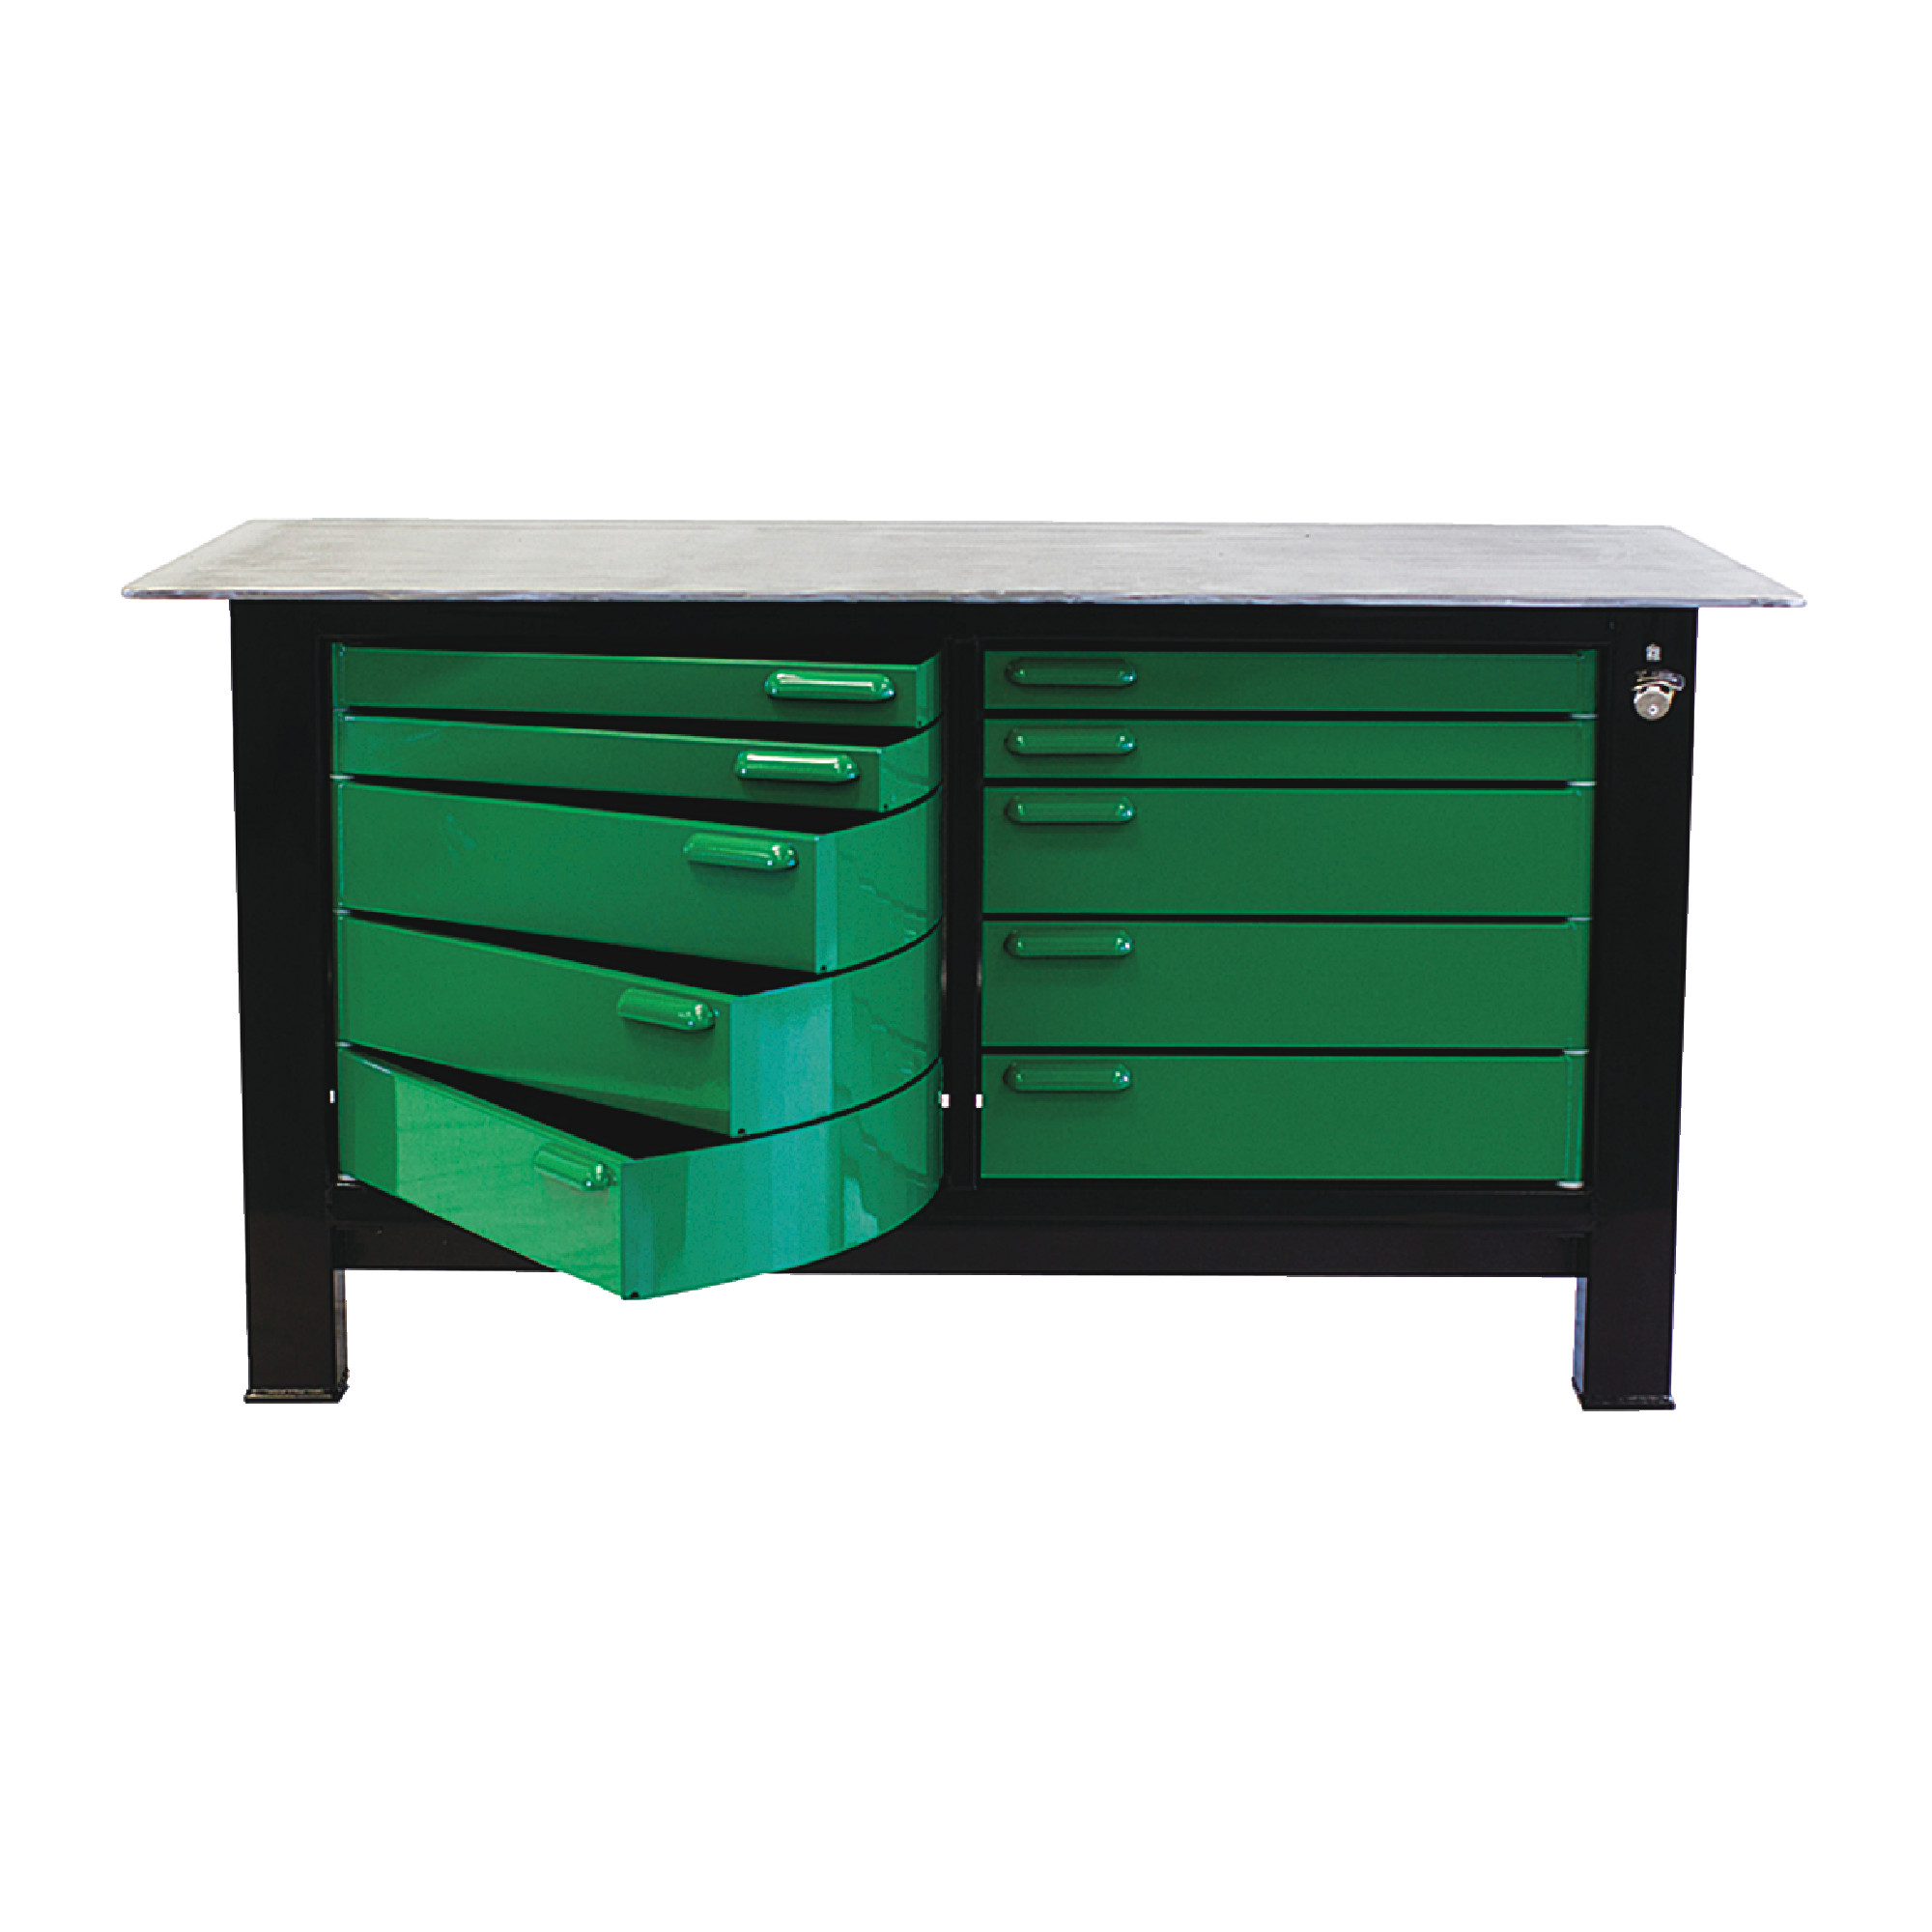 6' Long Two Full Banks Of Drawers